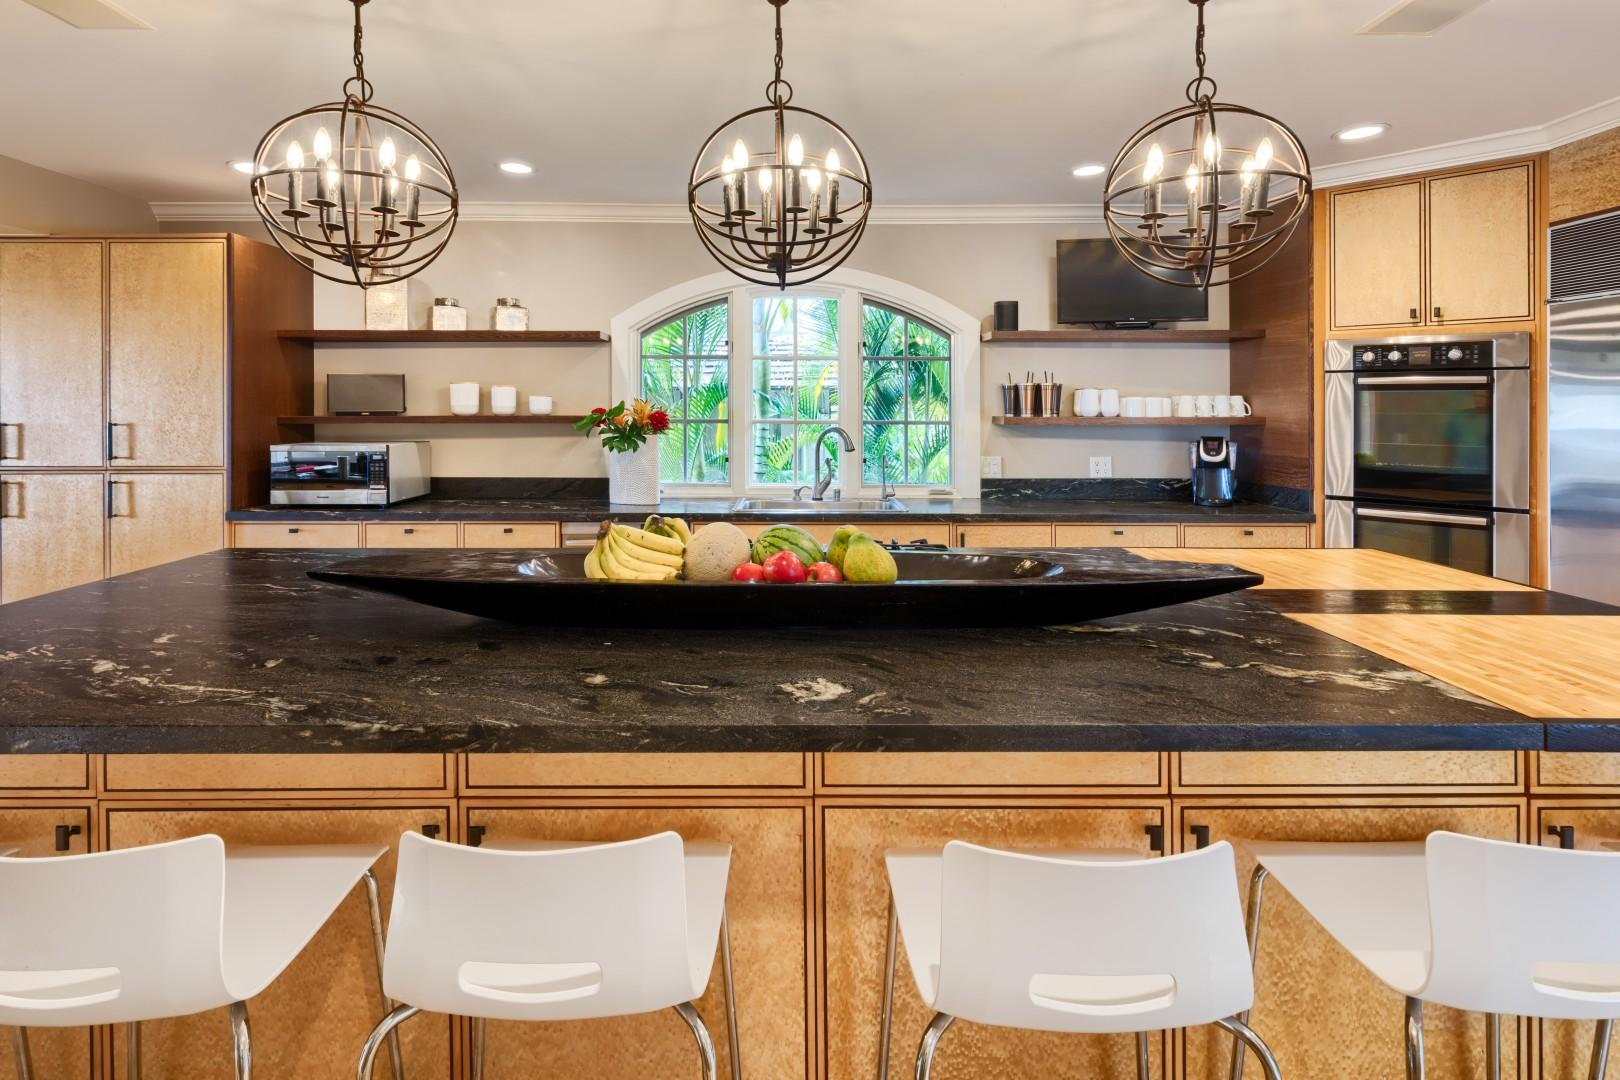 More views of the gorgeous kitchen.